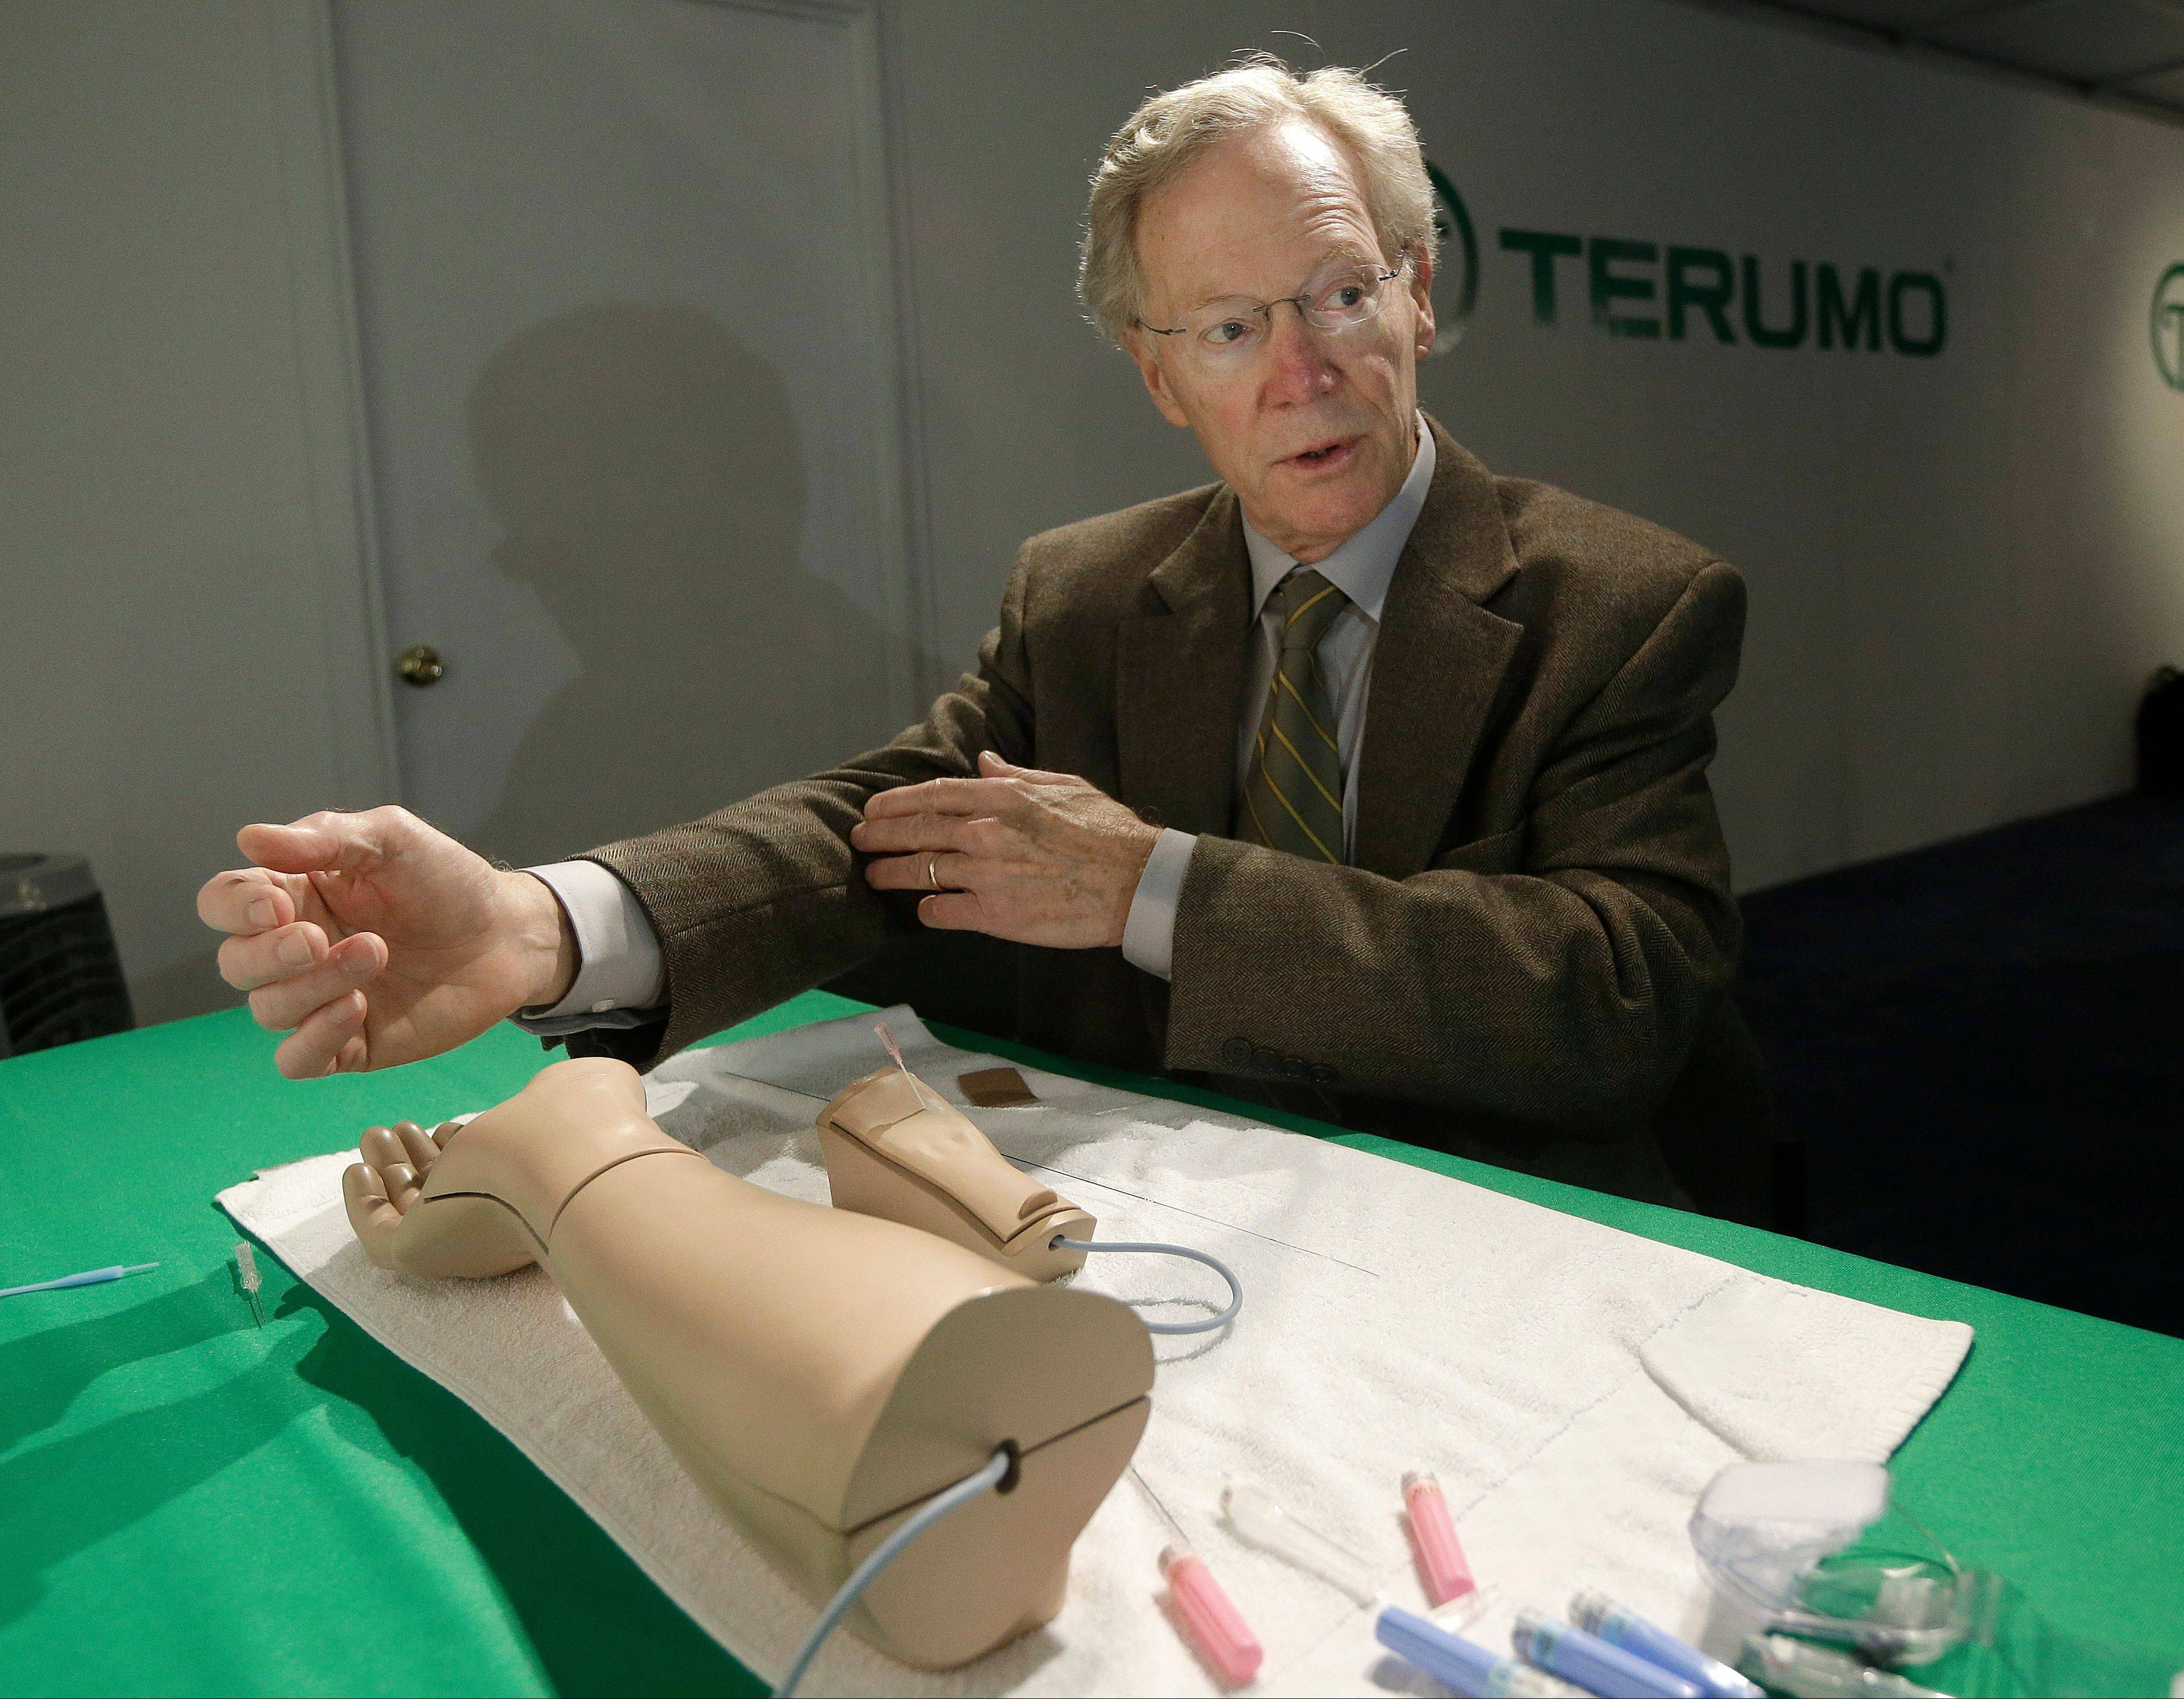 Cardiologist Dr. Spencer King demonstrates how doctors can open blocked heart arteries by going through an arm, using a model.